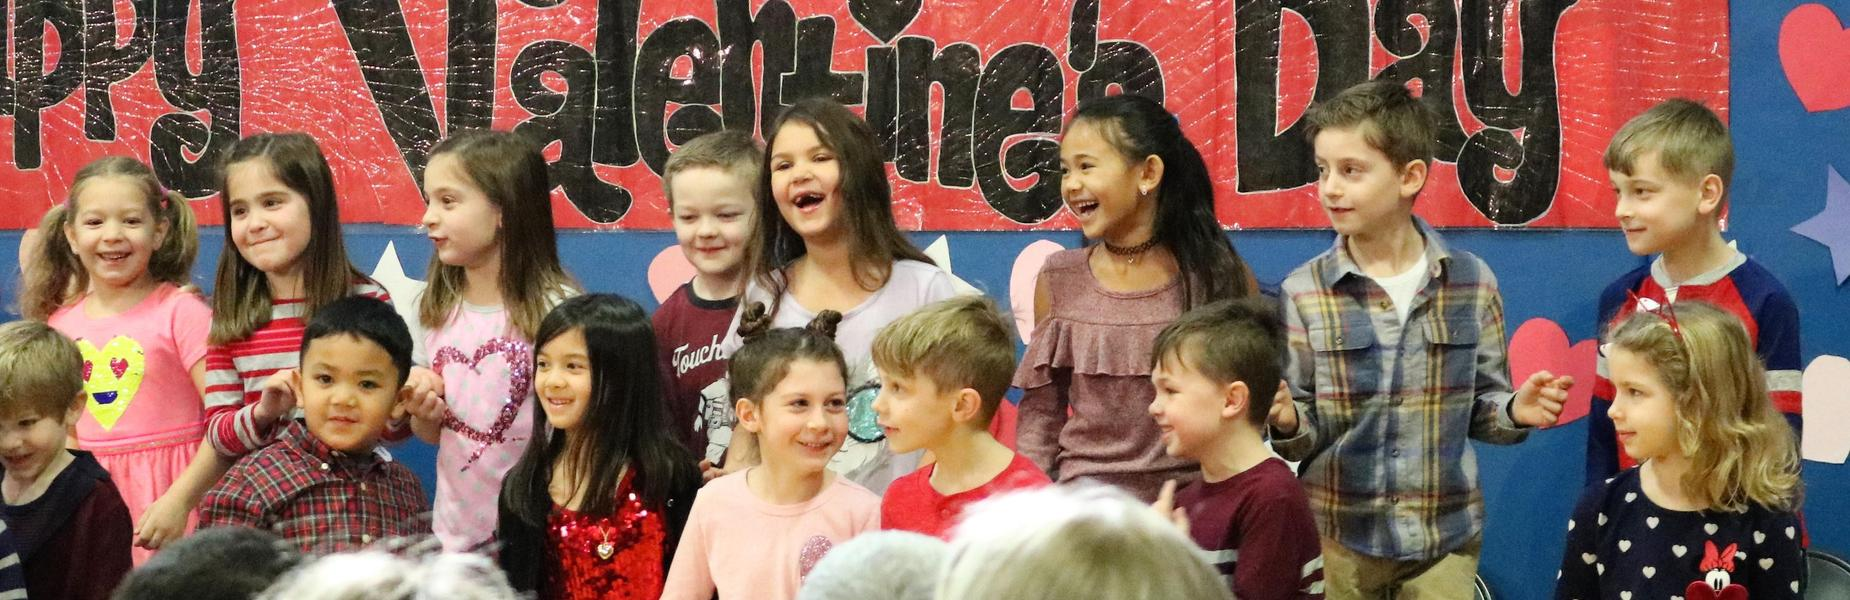 First graders enjoy a Valentine's Day singalong at Washington School.